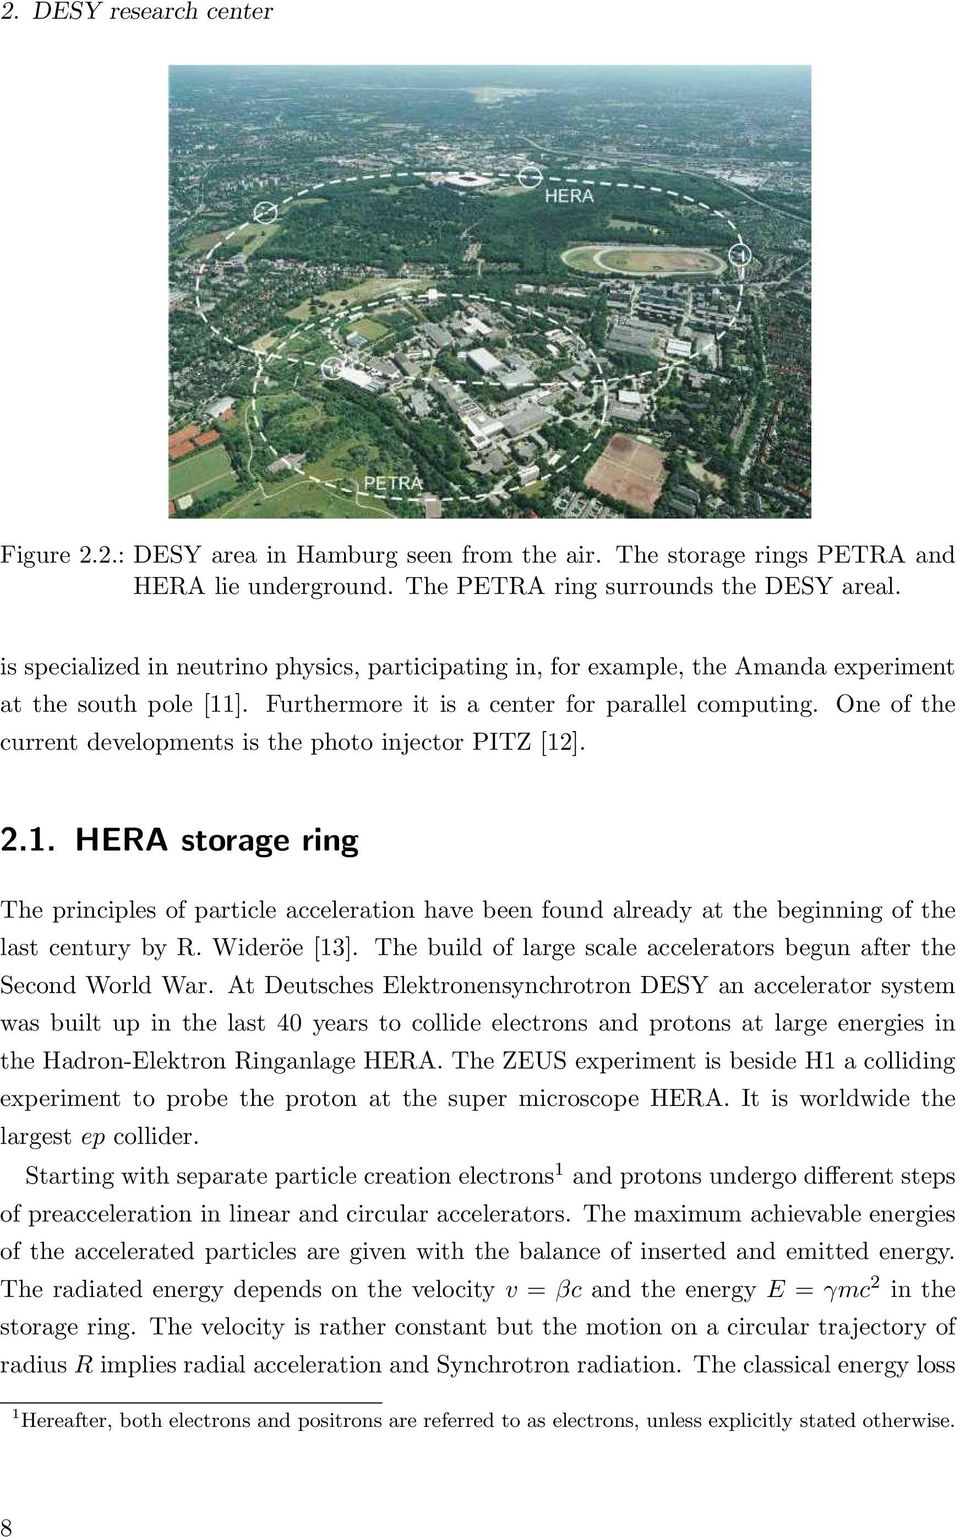 One of the current developments is the photo injector PITZ [12]. 2.1. HERA storage ring The principles of particle acceleration have been found already at the beginning of the last century by R.